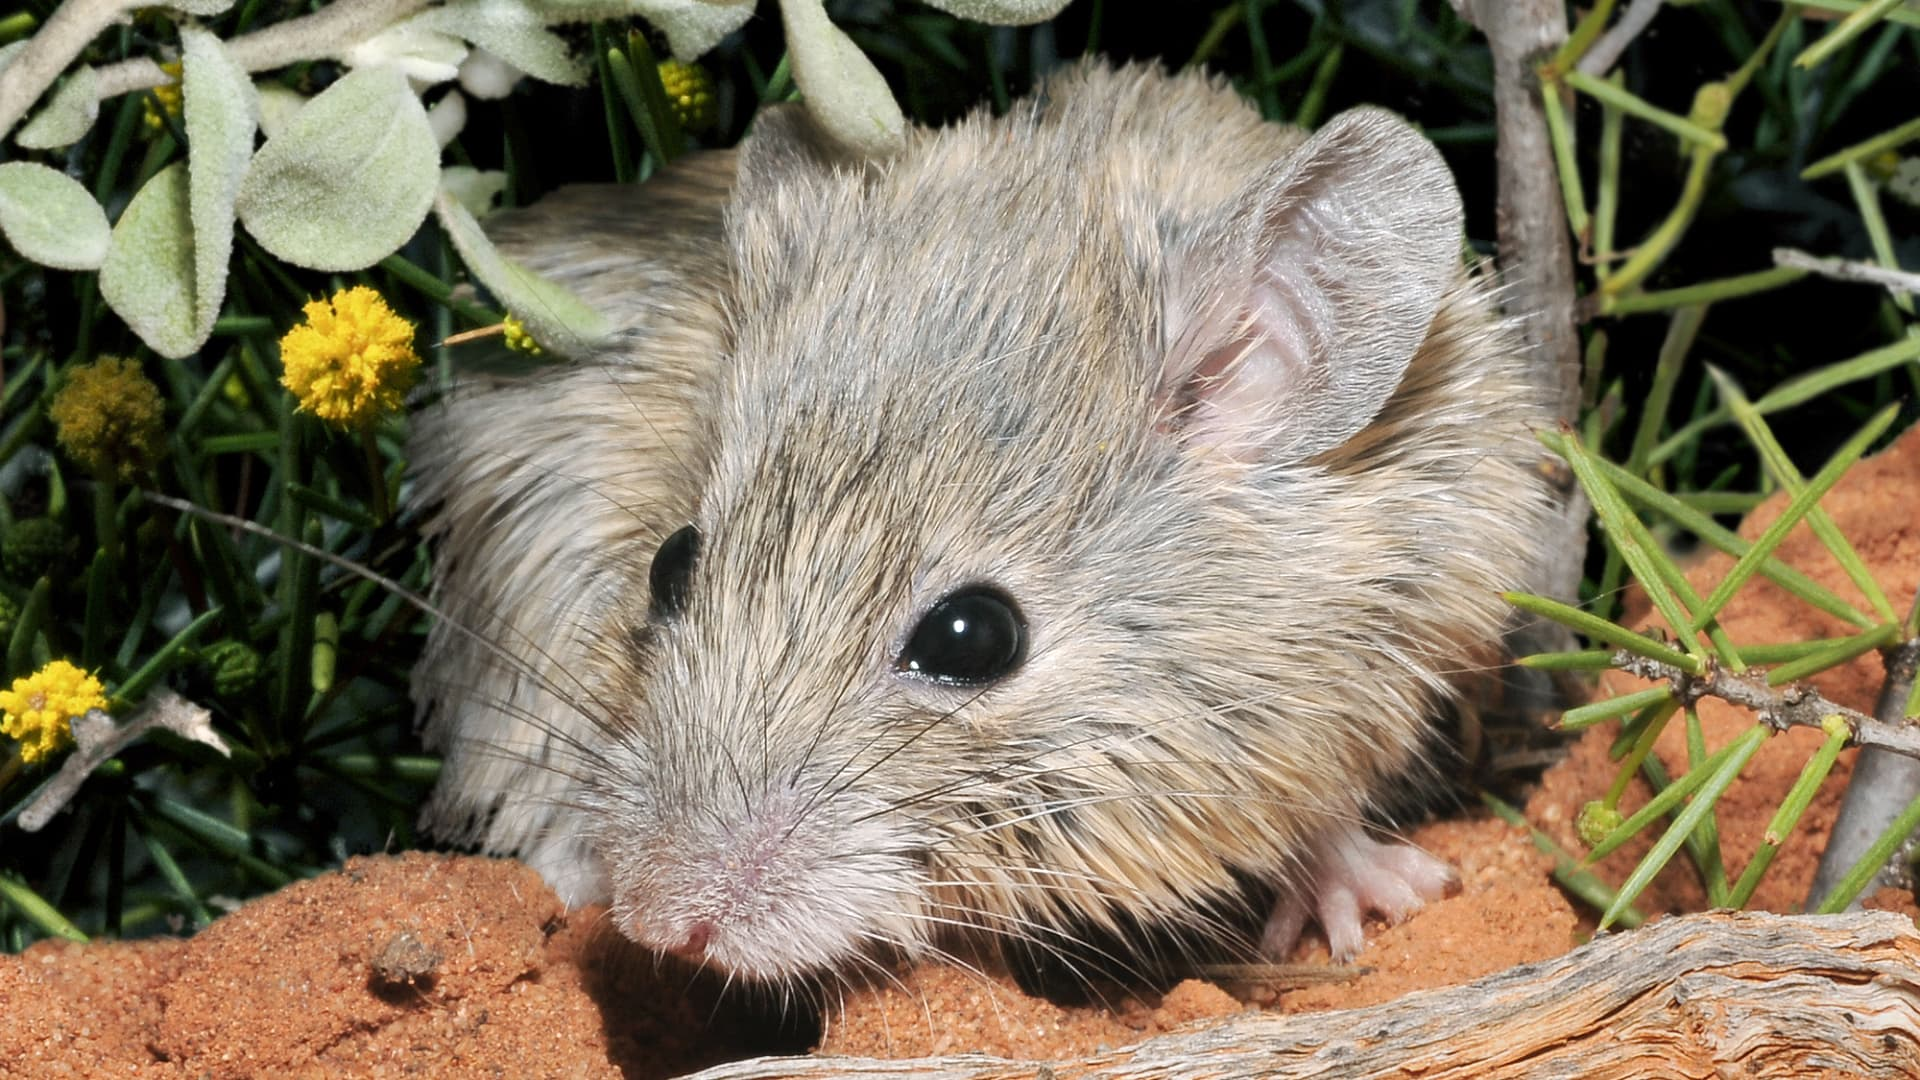 Biodiversity: the extinct mouse is still alive